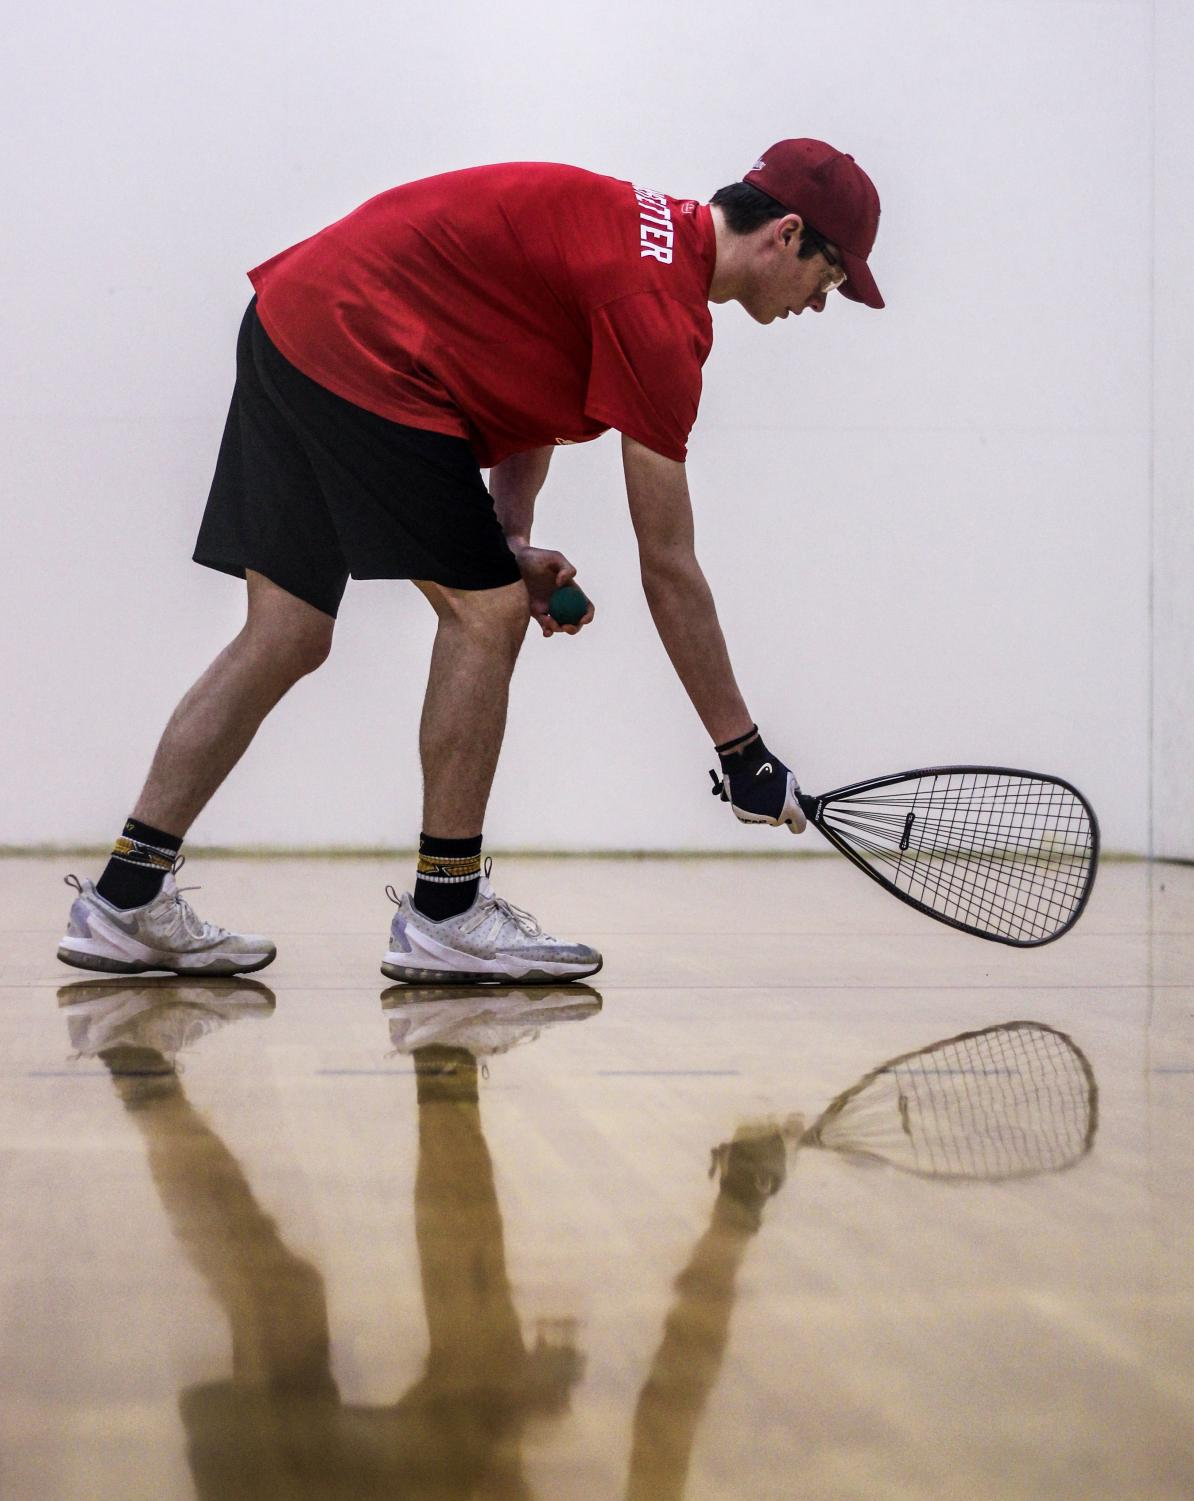 Getting+ready+to+serve%2C+Grant+Branstetter%2C+senior%2C+competes+in+a+racquetball+tournament+Feb.+20.